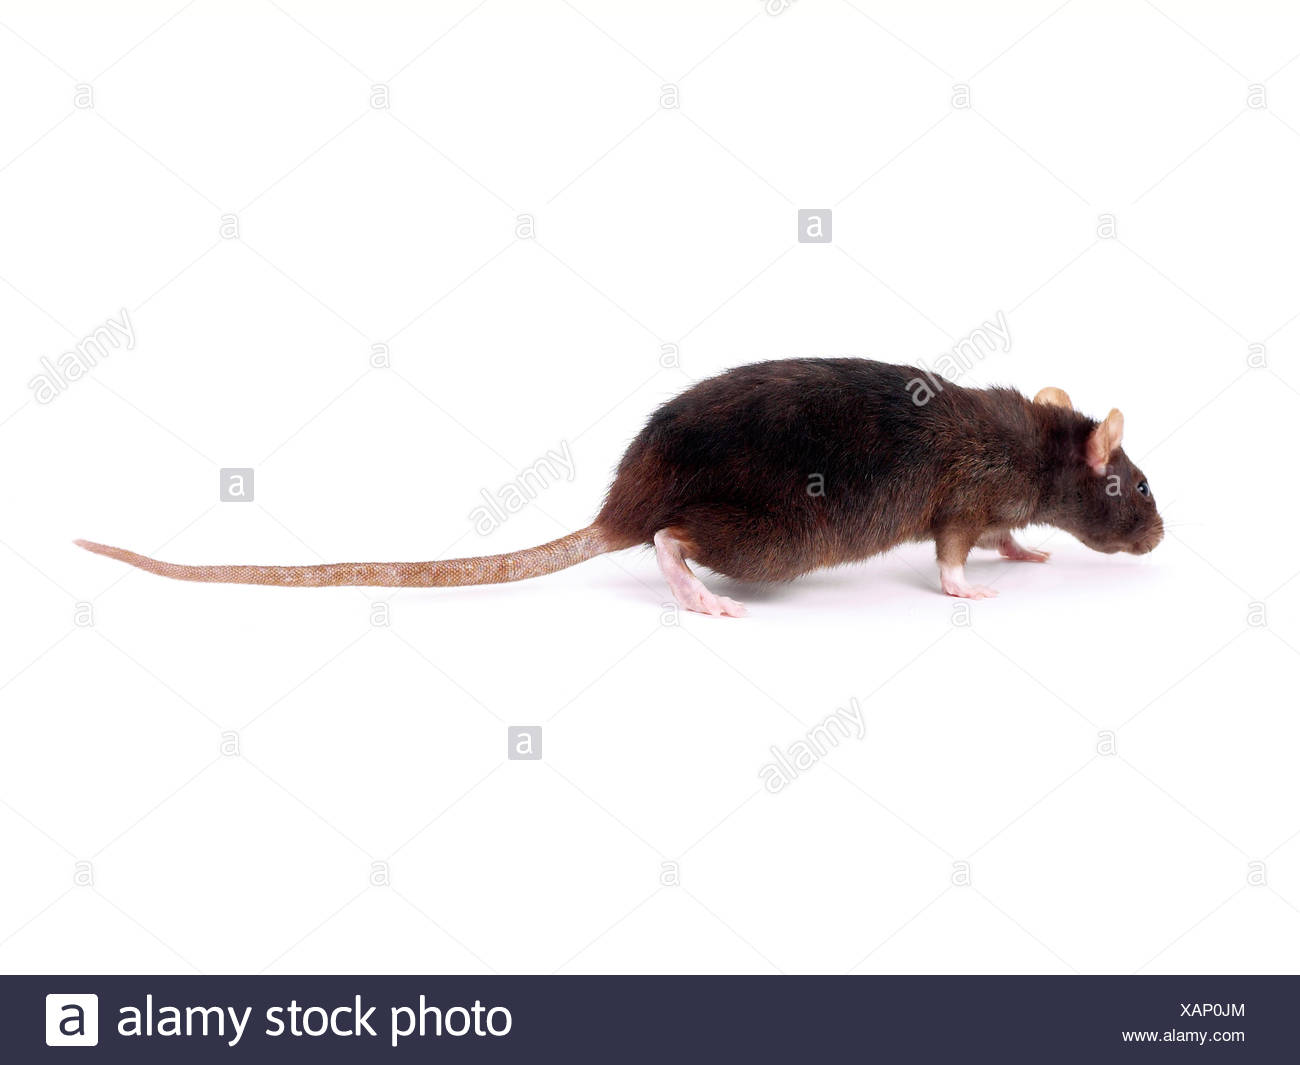 A brown rat sniffing the floor. Stock Photo